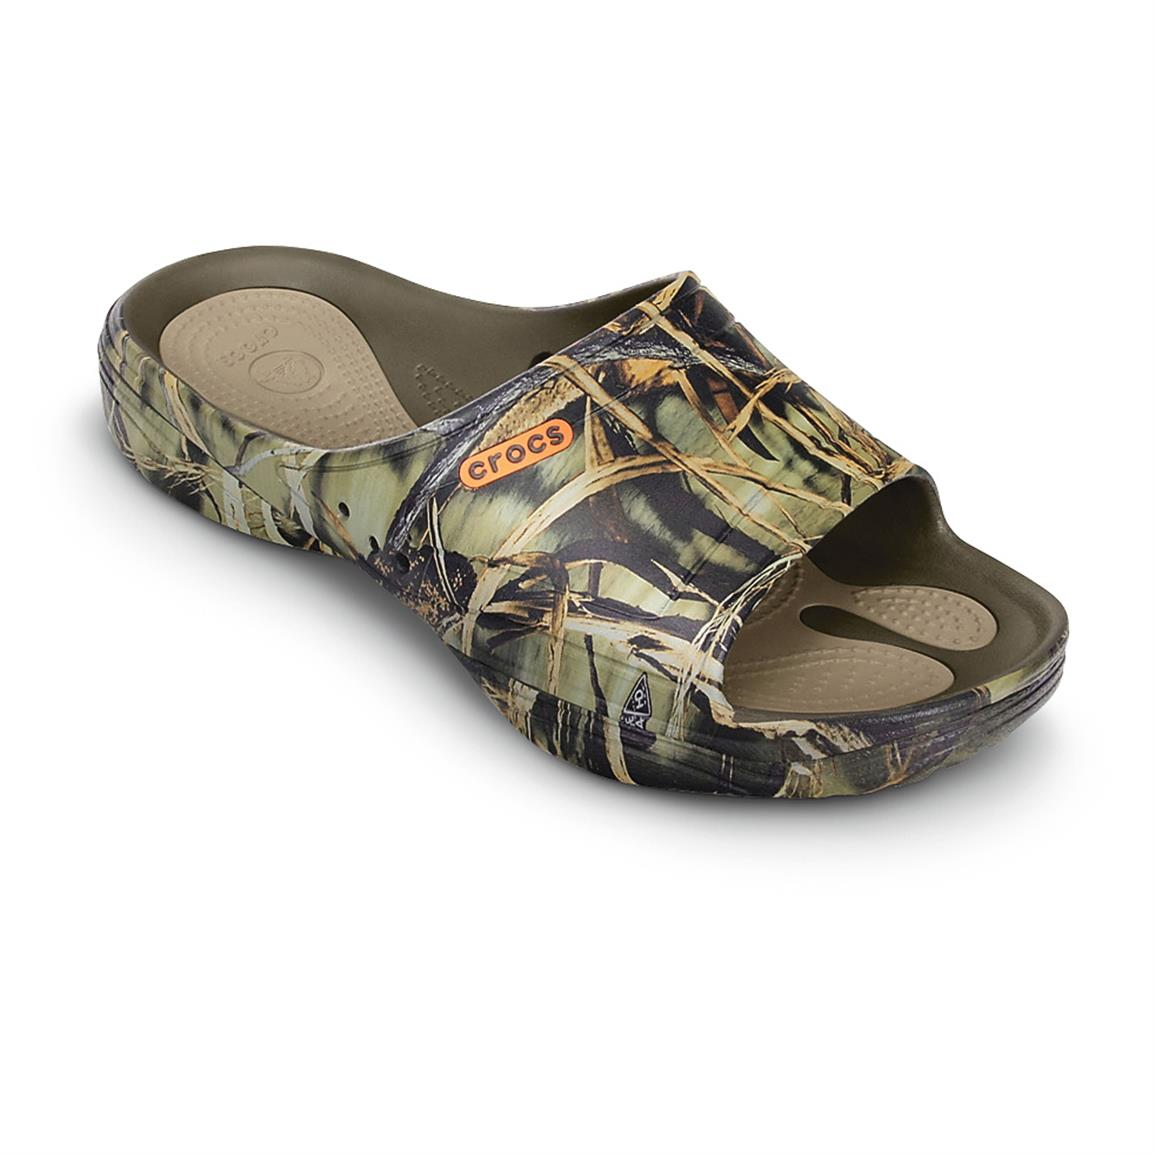 Crocs Modi Flip Flop | Croc Mens Sandals | Crocs Slides for Men